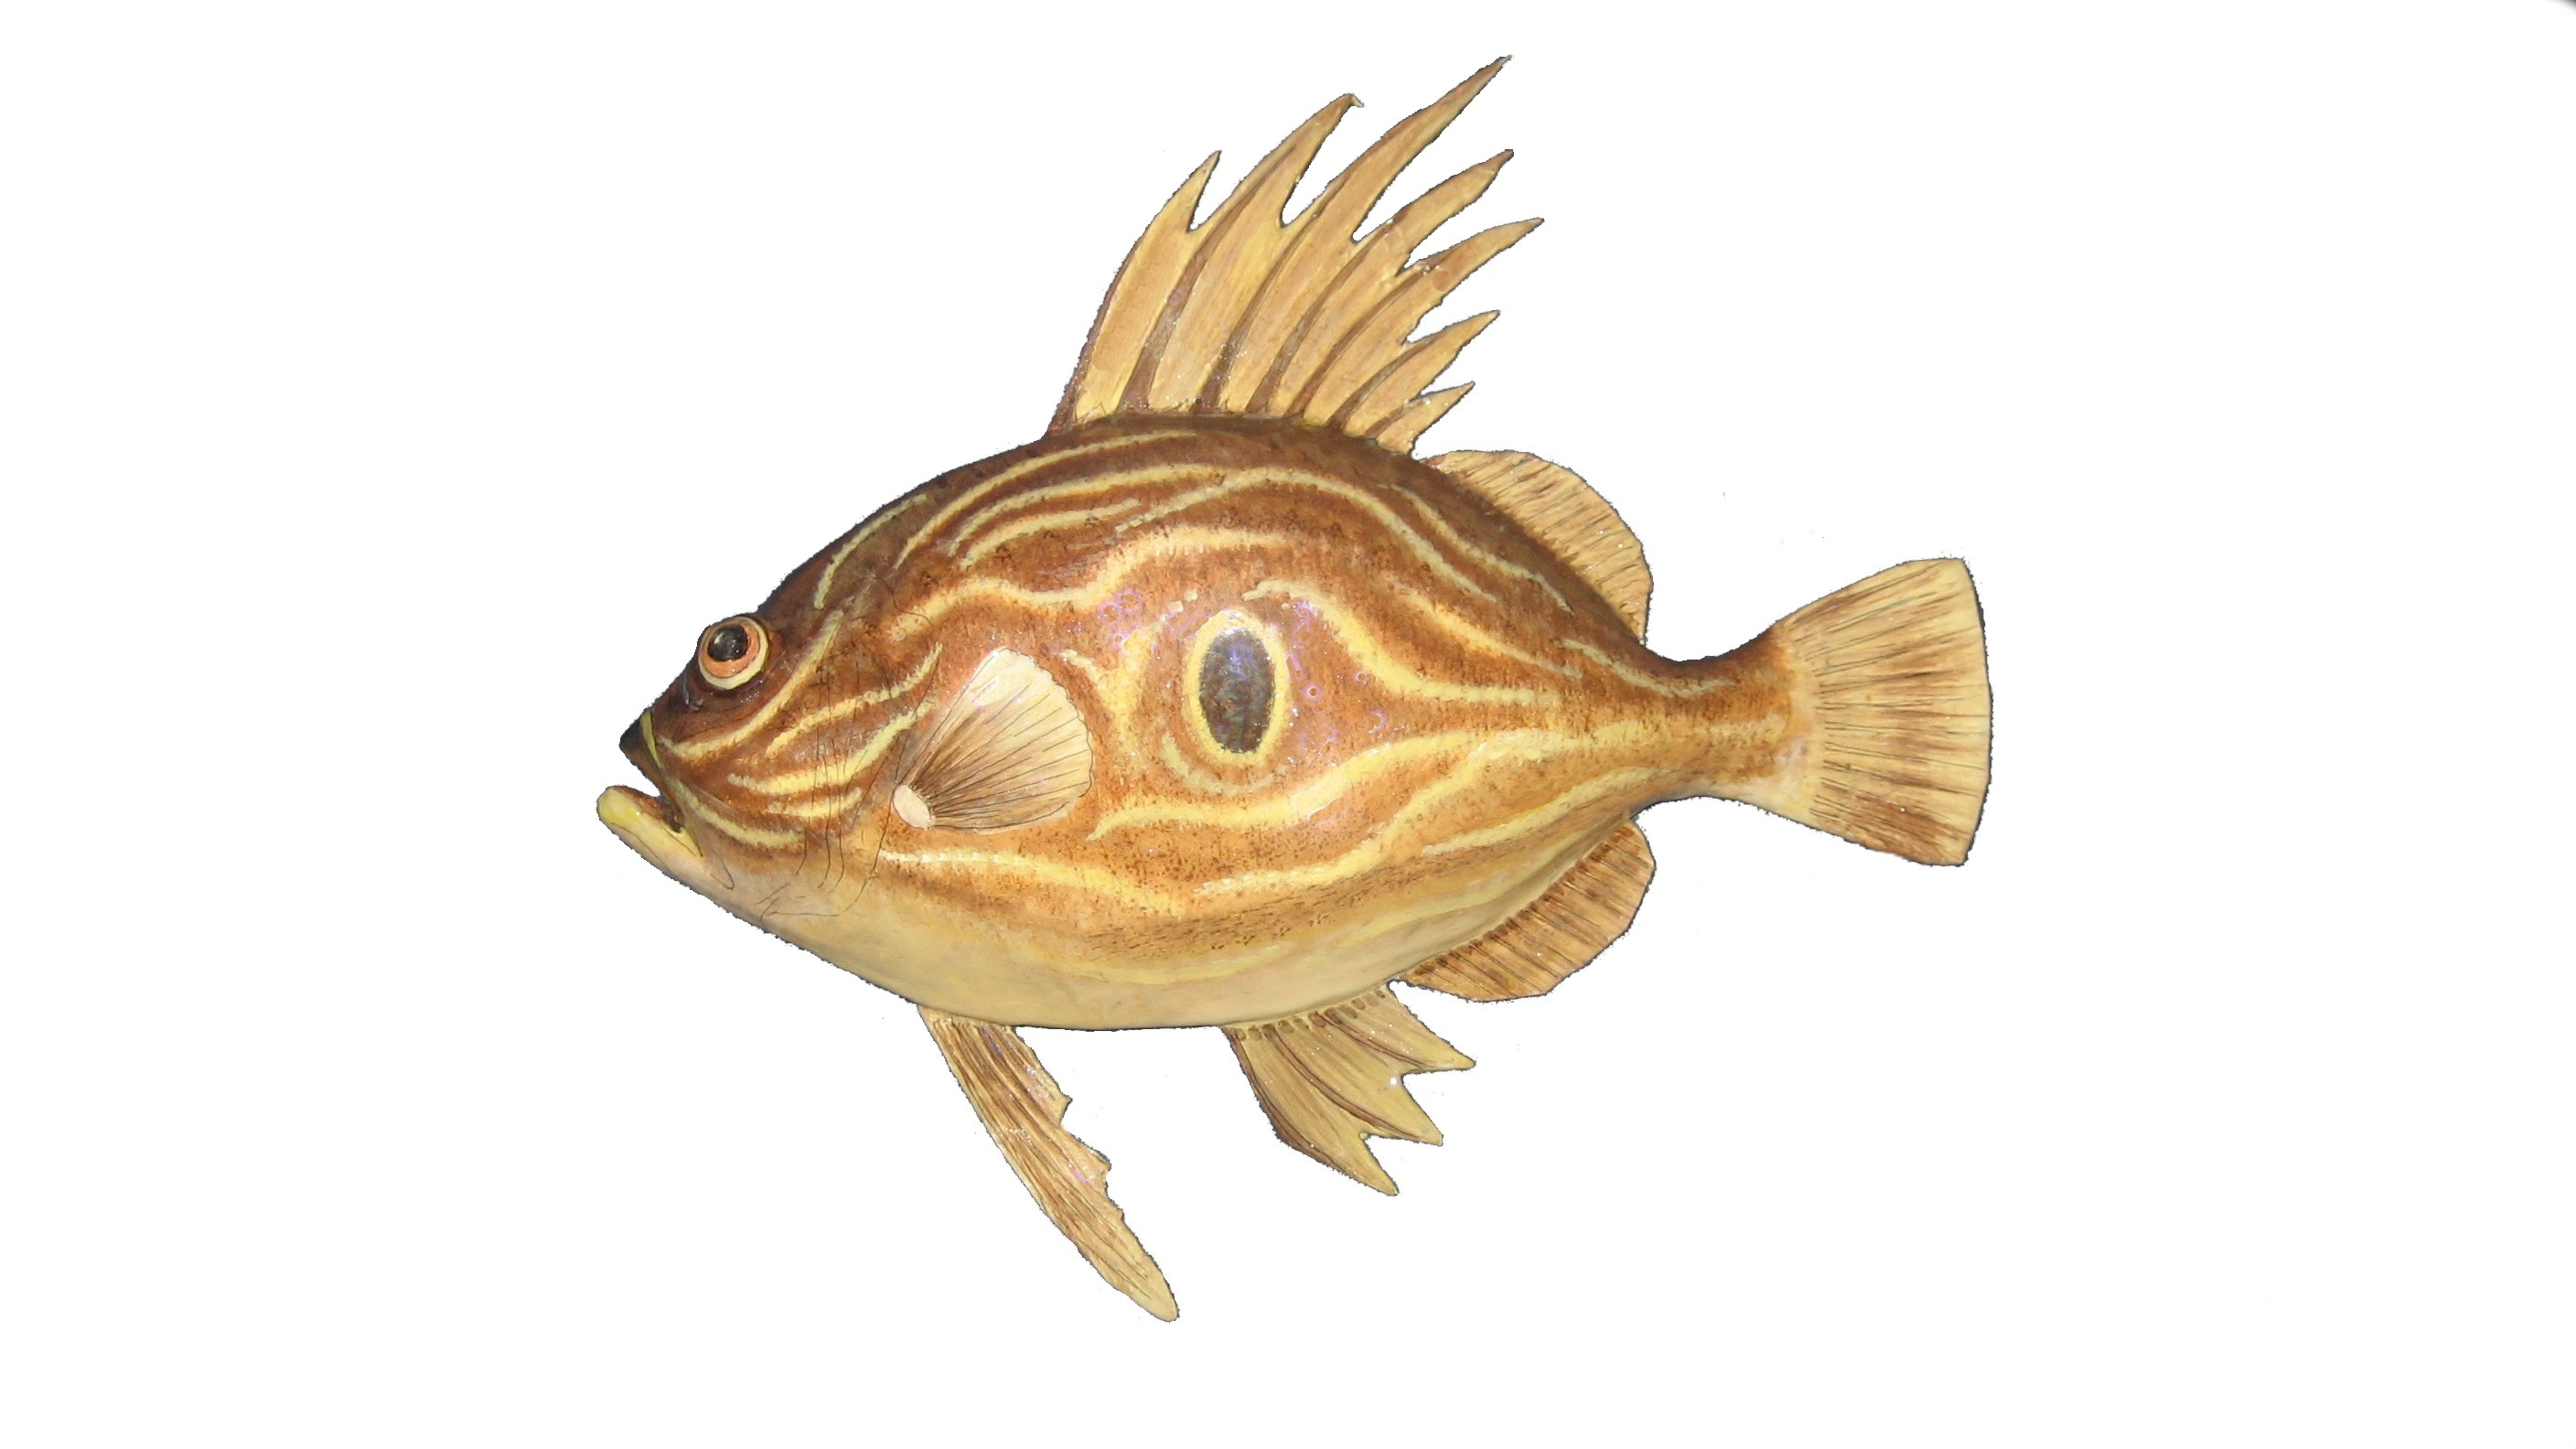 Picture of a John Dory fish